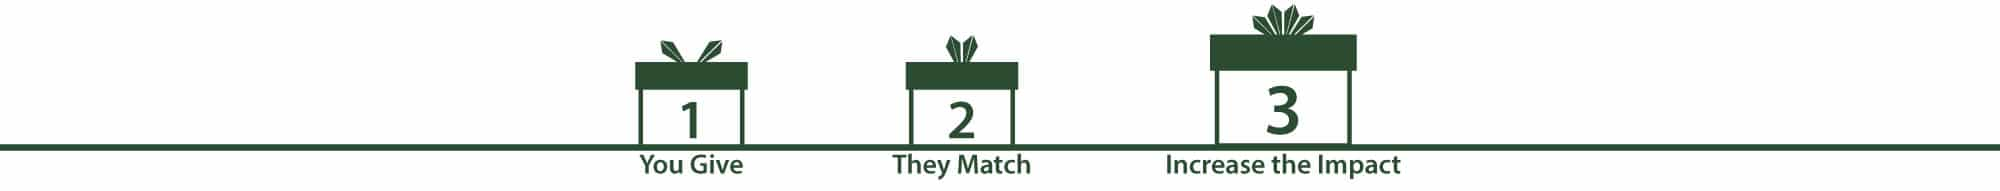 1 You Give. 2 They Match. 3 Increase the Impact